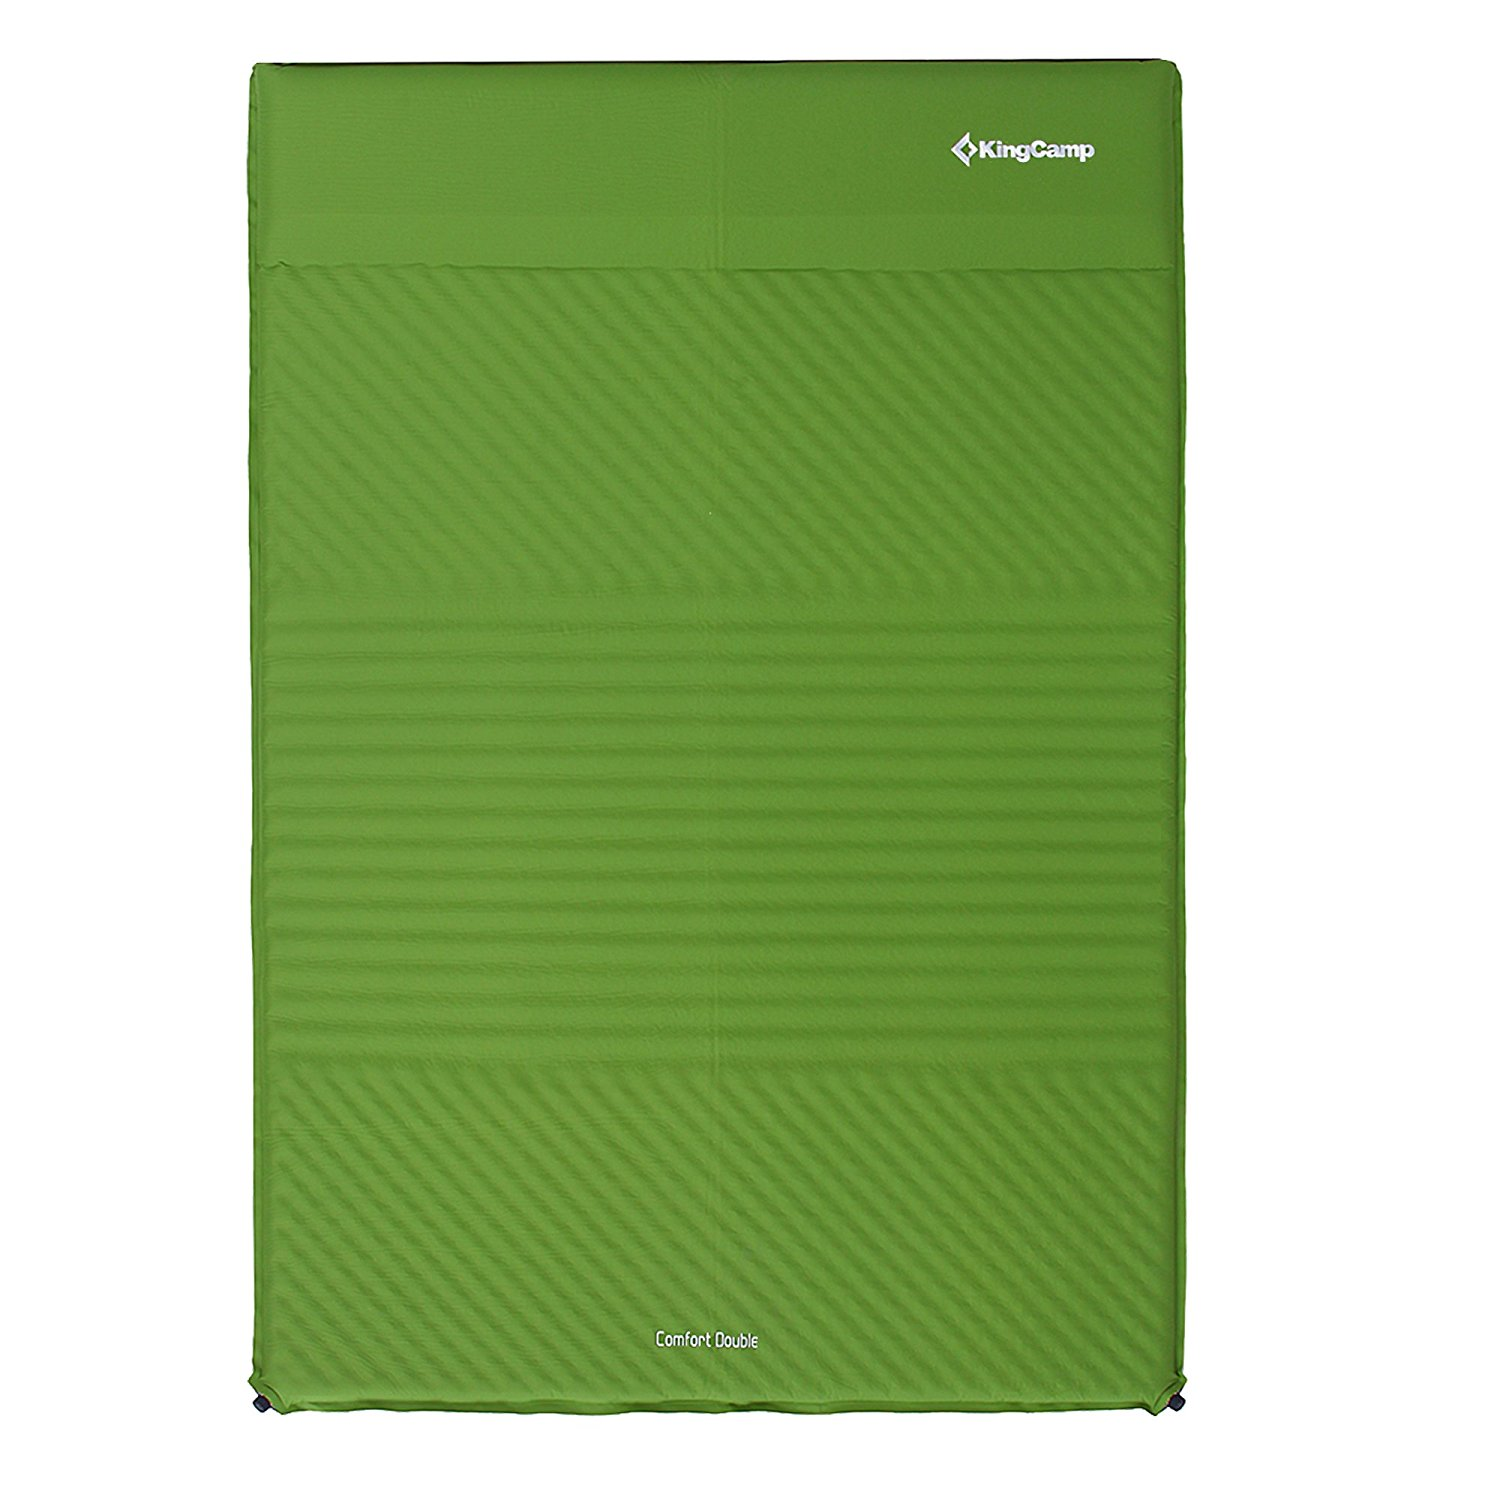 KingCamp 2-Person Camping Pad with Pillows Self-Inflating damp-proof Durable 100% Polyester 75D Micro Brushed PVC-Free,Lightweight for Outdoor Acctivies, Carry Bag Included